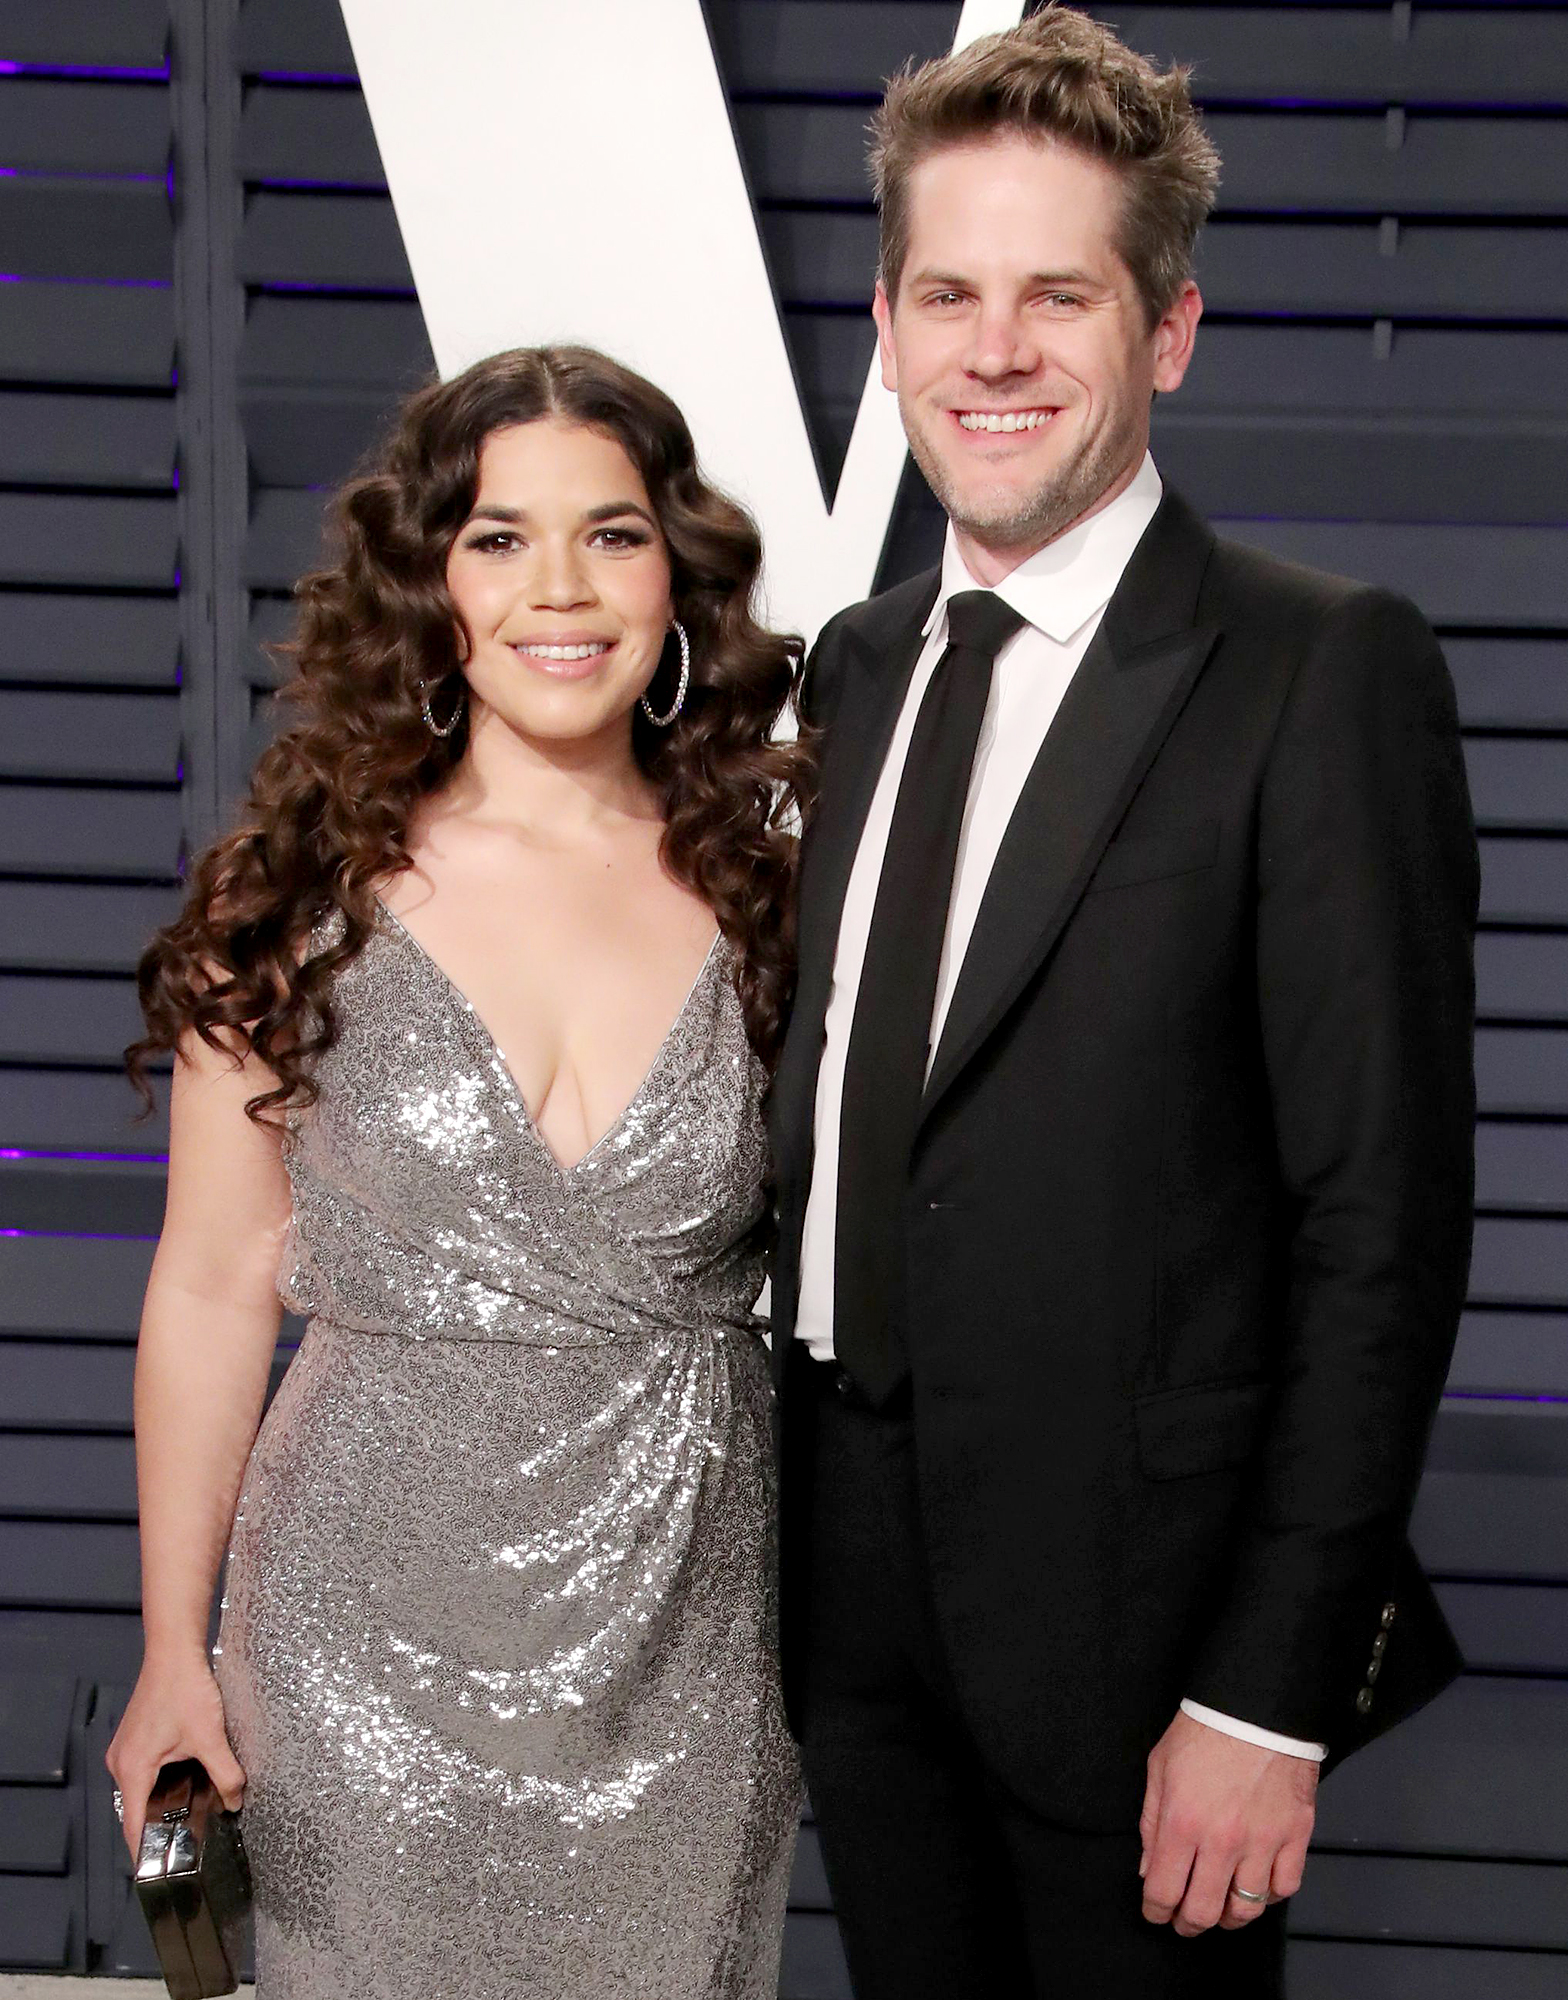 America-Ferrera-and-Ryan-Piers-Williams-gives-birth